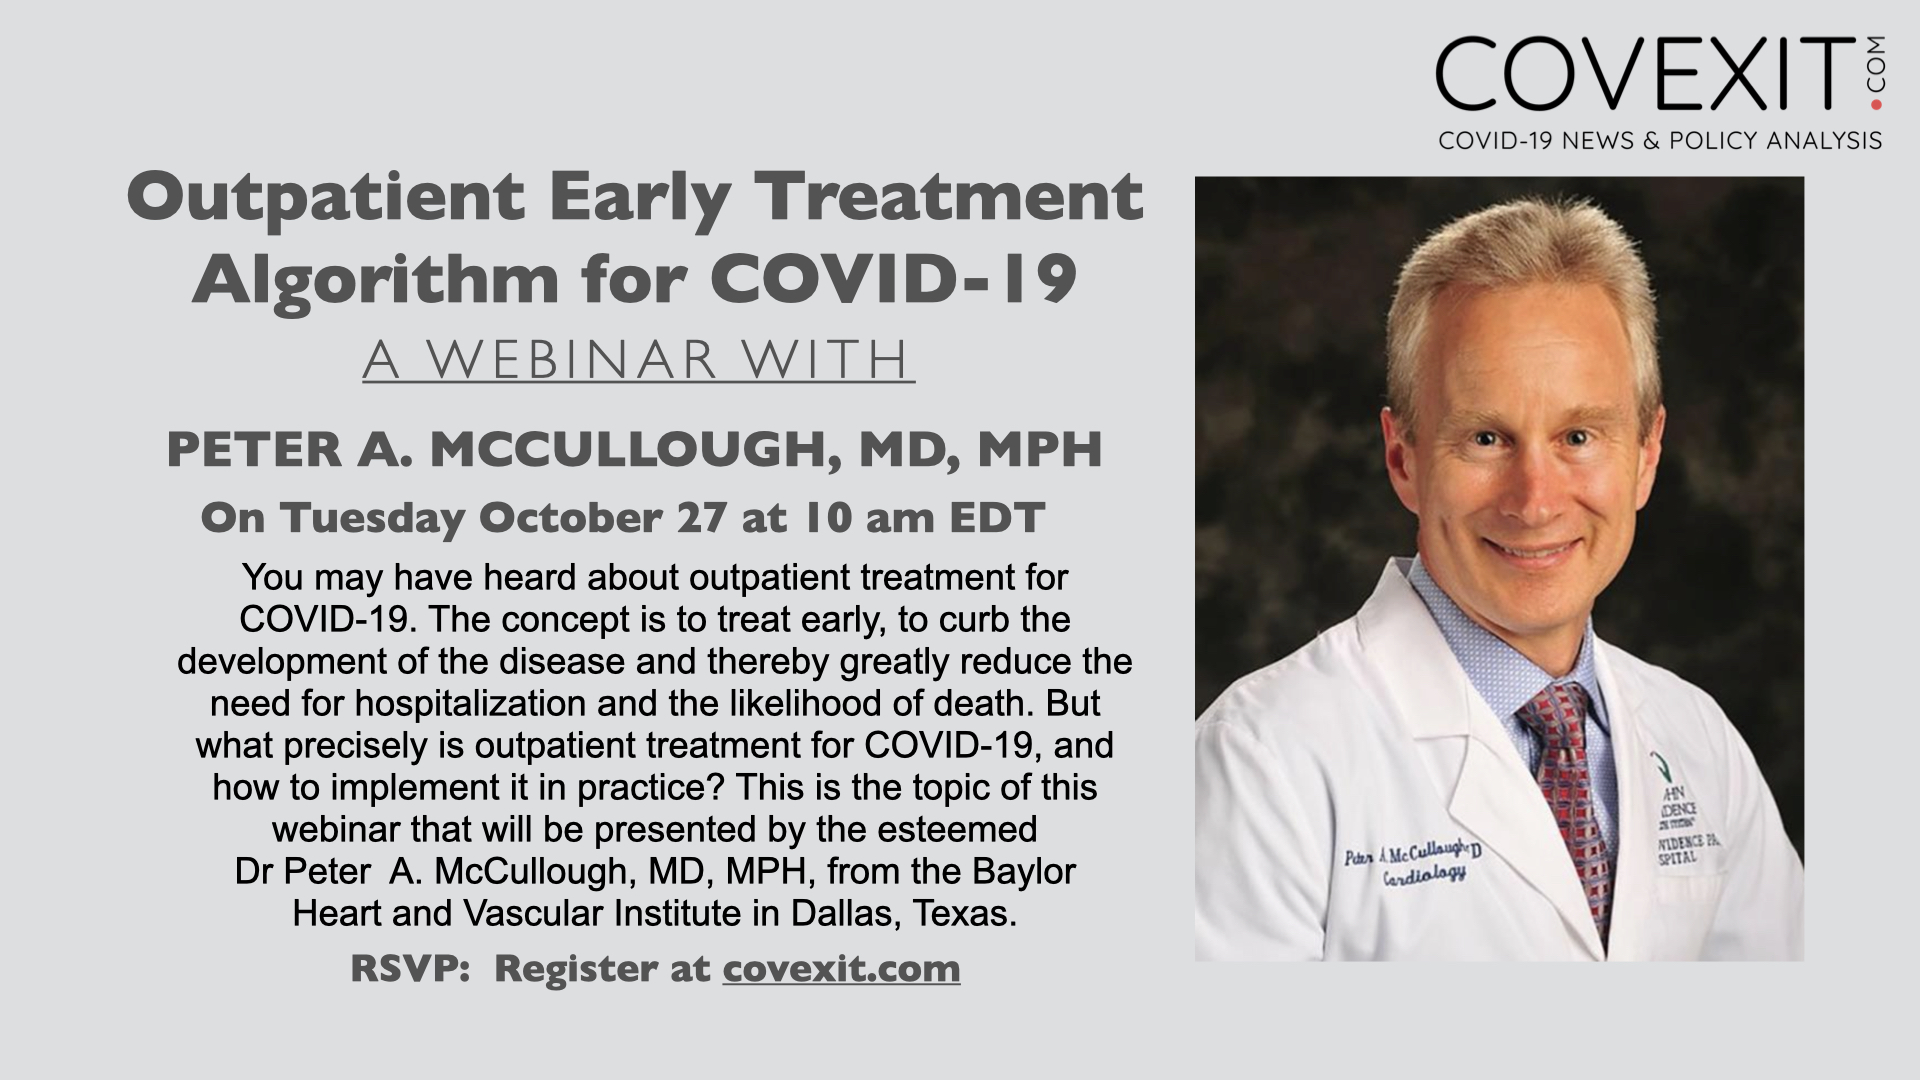 Outpatient Early Treatment Algorithm for COVID-19 - a Webinar with Dr Peter A. McCullough